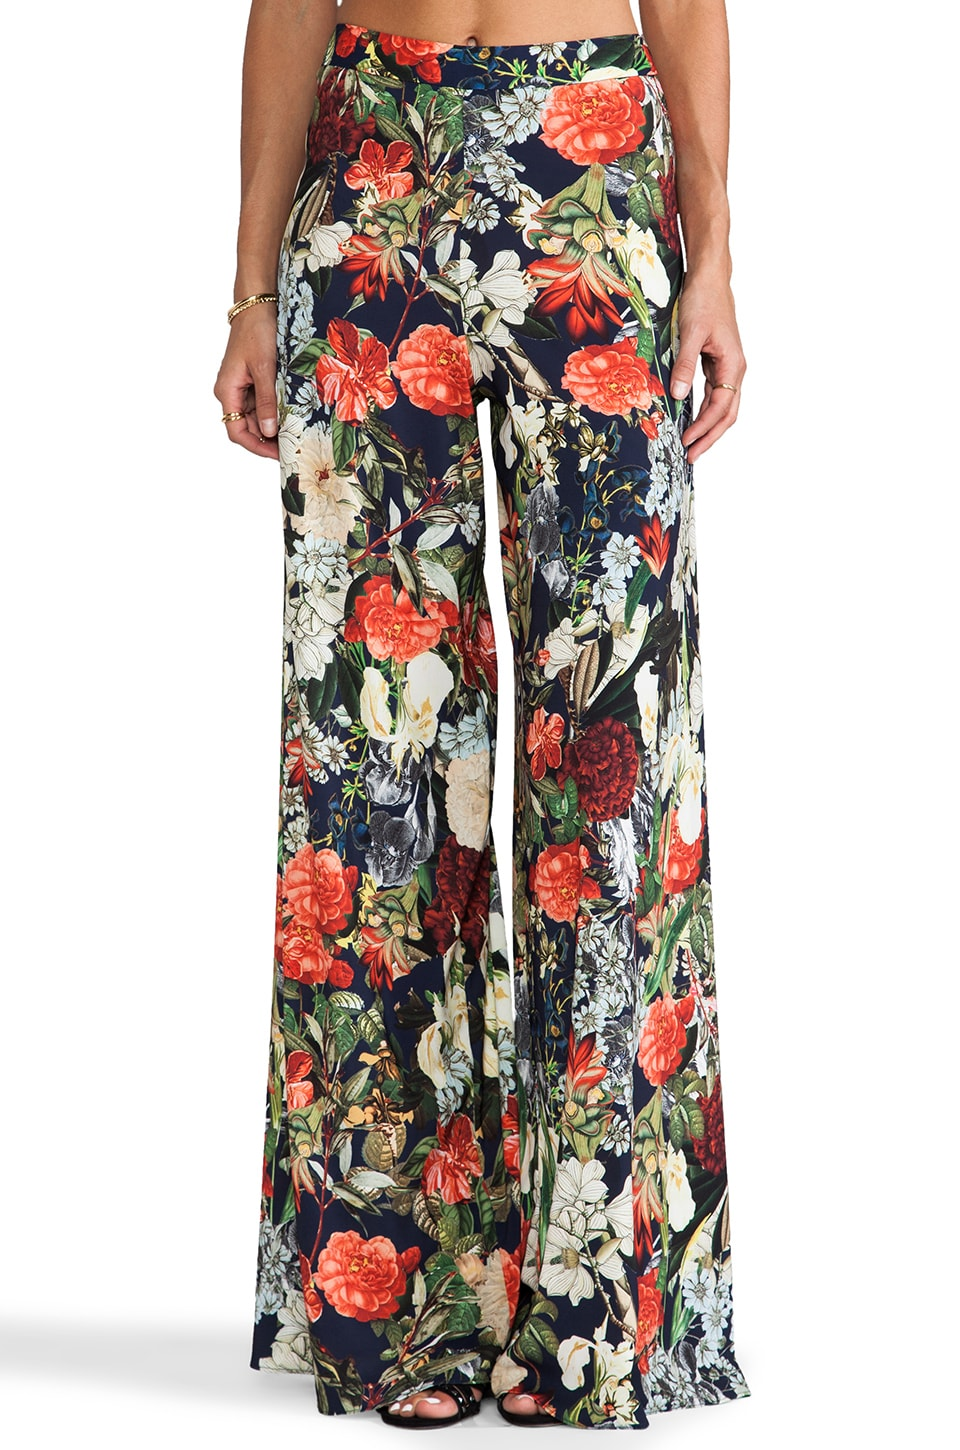 Alice + Olivia Super Flared Wide Leg Pant in Vintage Bouquet